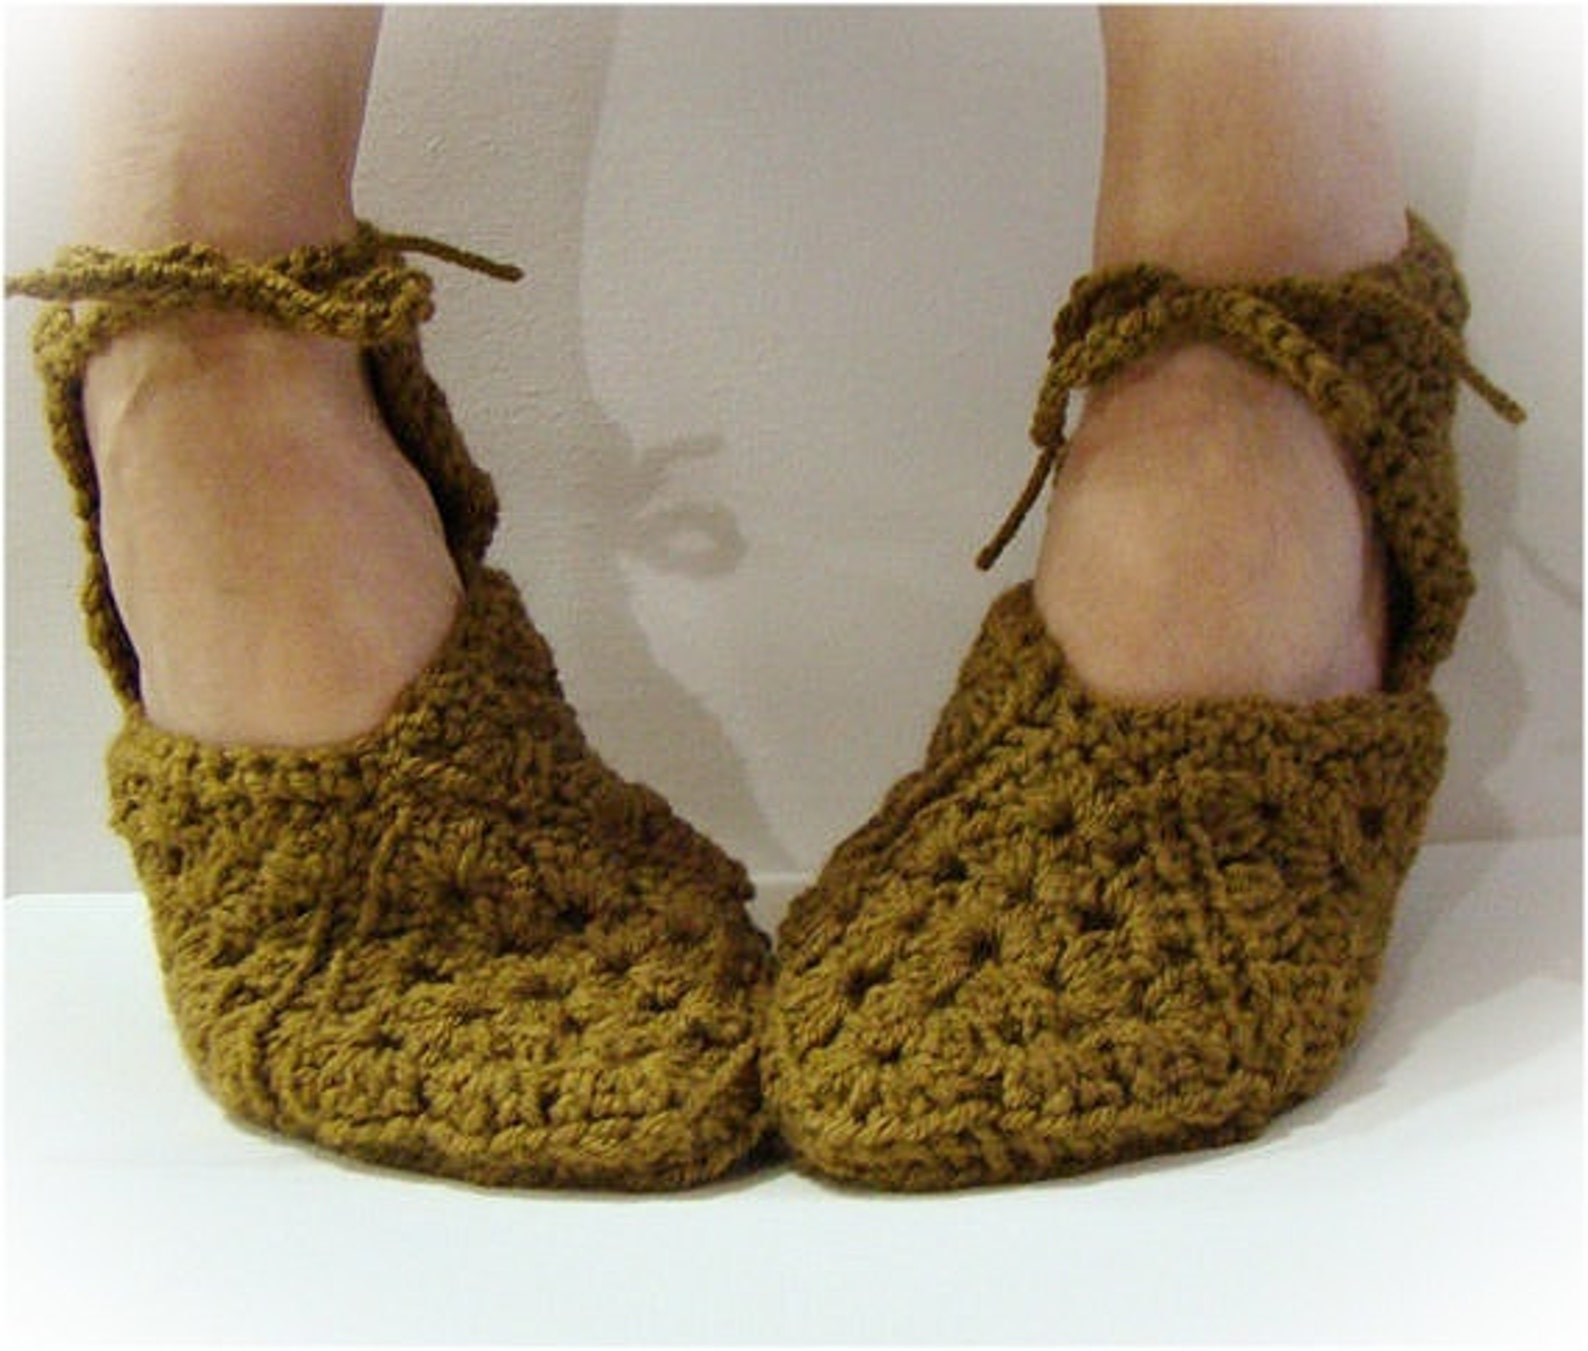 antique taupe slipper, granny square slippers, crochet slipper, women slipper, slipper with ties, ballet slipper, gladiator sand